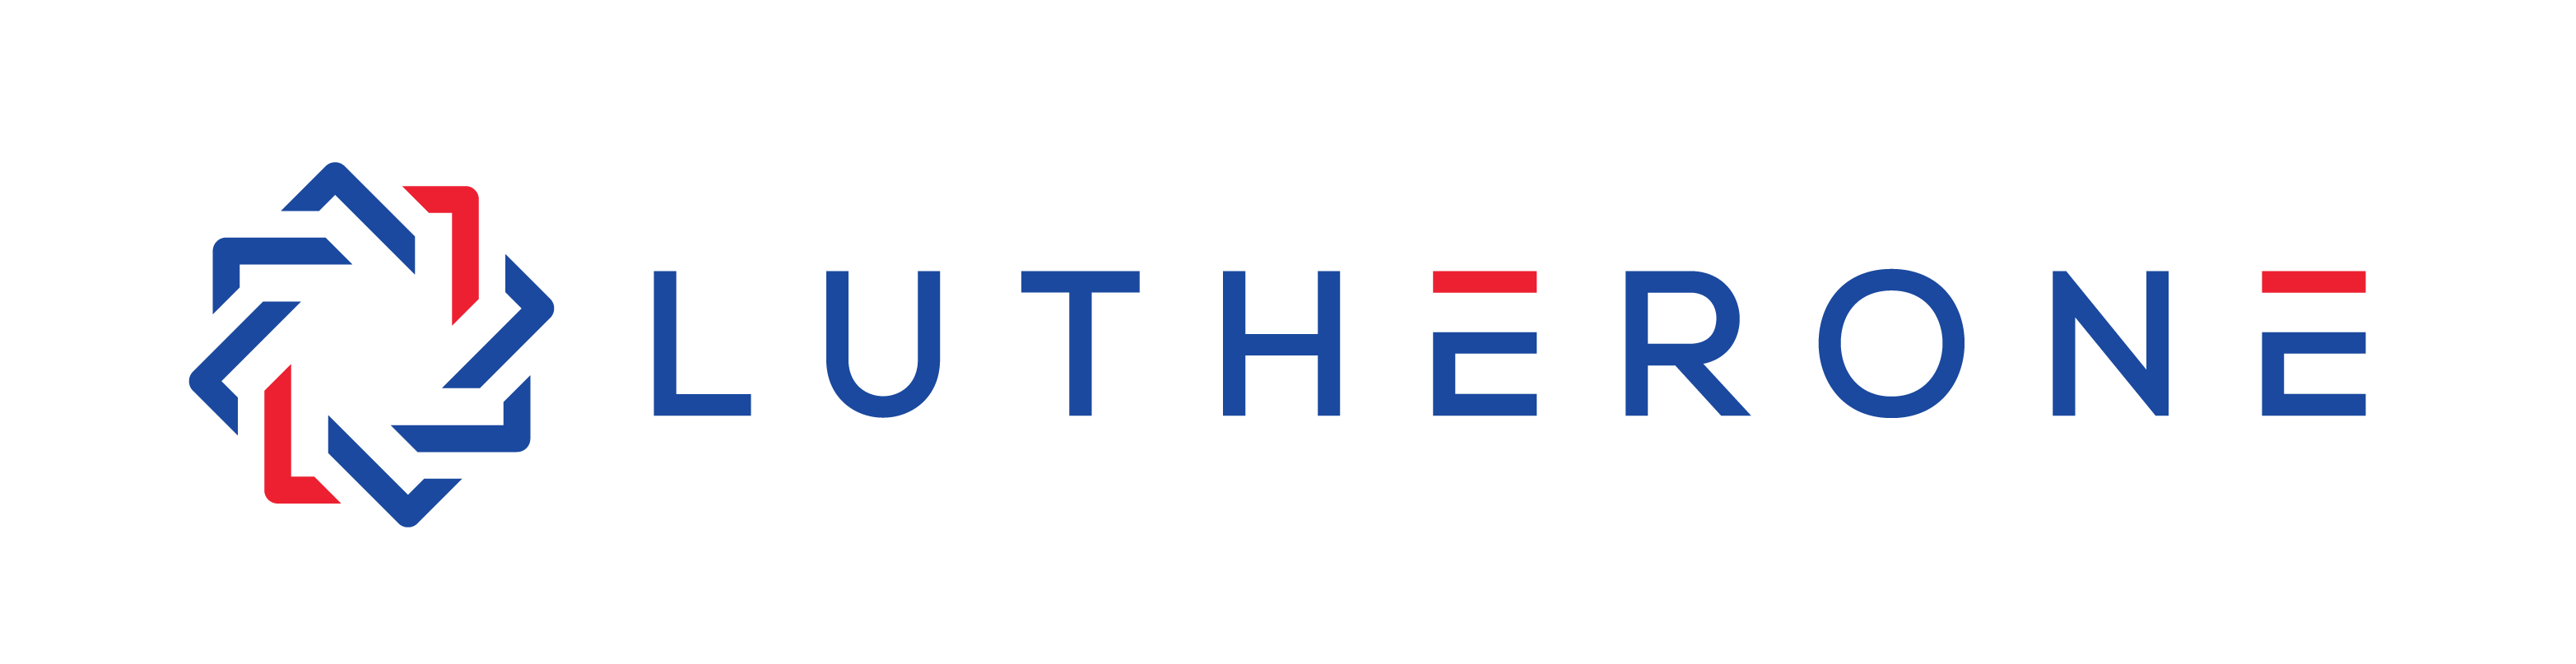 LutherOne Logo (Blue+Red)-01-1